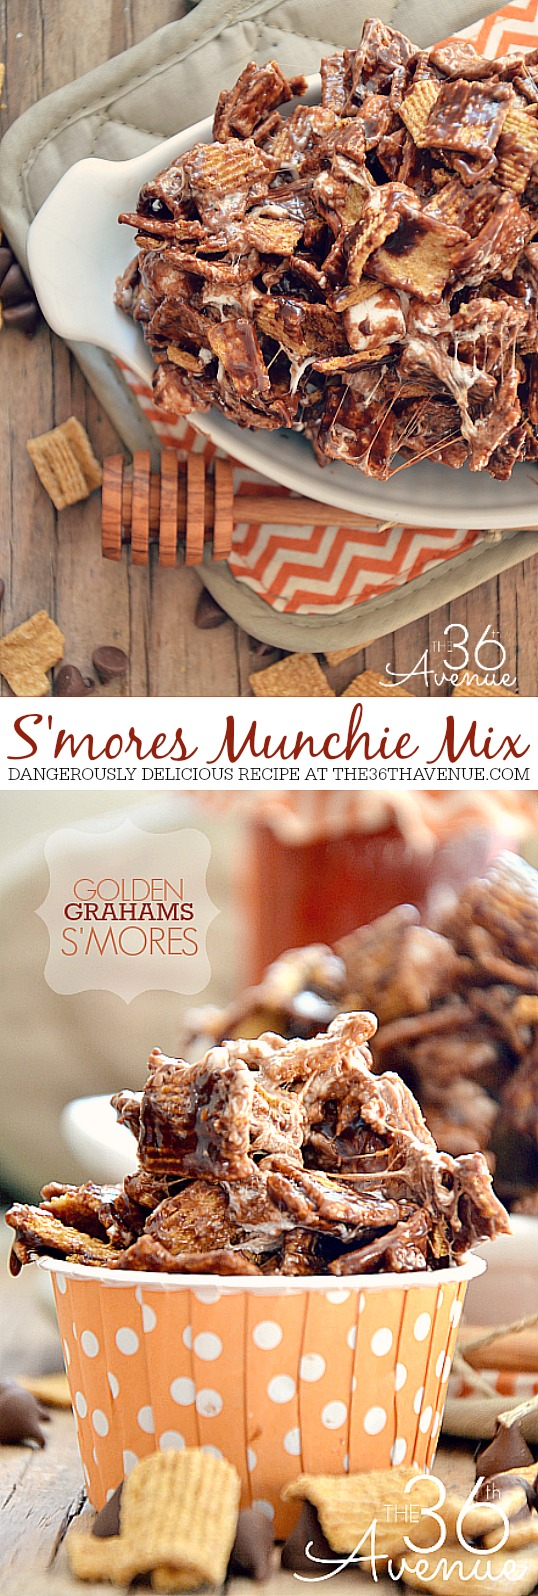 Smore Munchie Mix Recipe at the36thavenue.com These are divine!